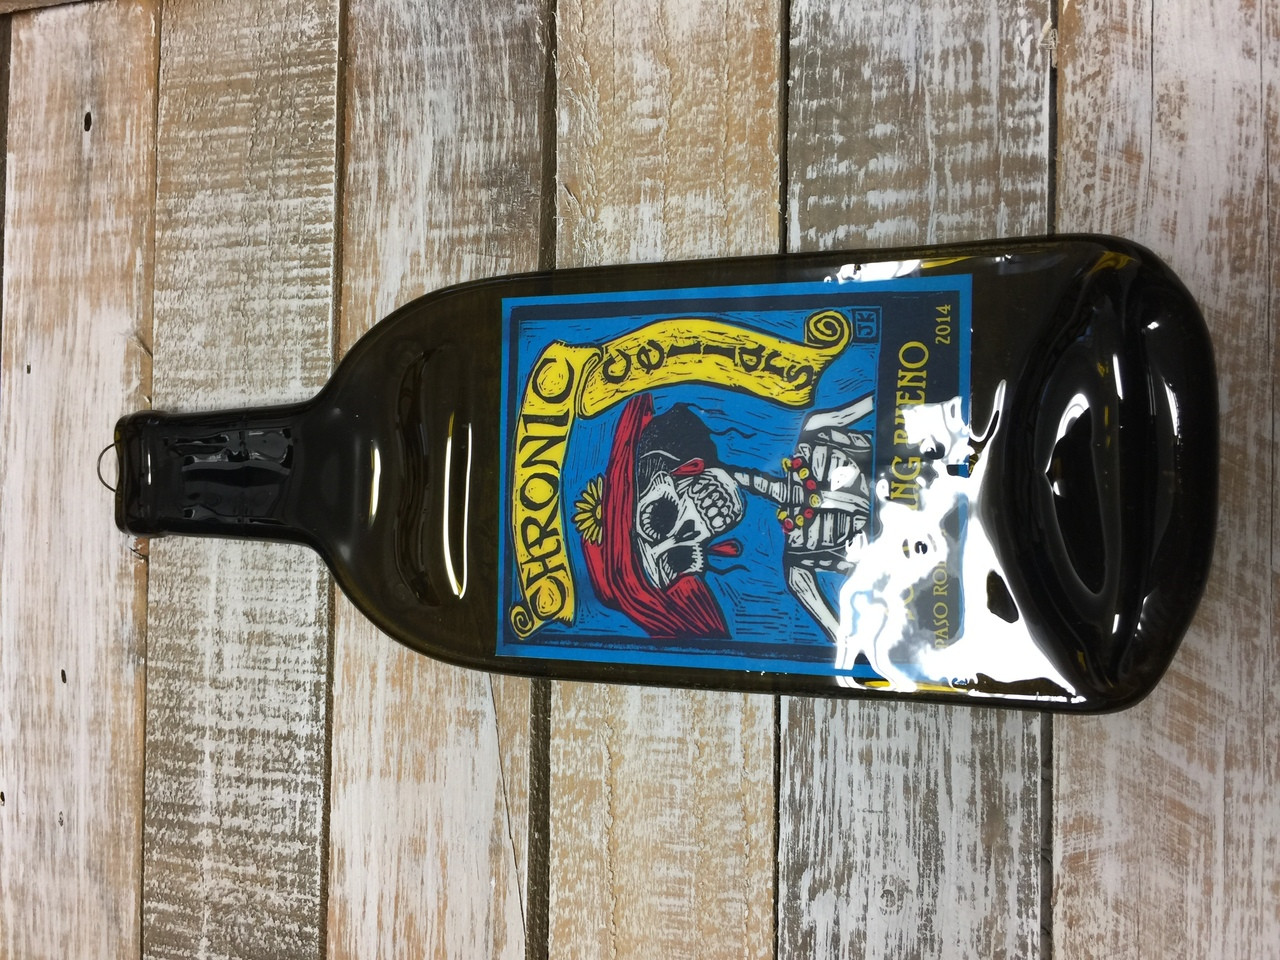 Chronic Cellars Sofa King Bueno Melted Wine Bottle Cheese Serving